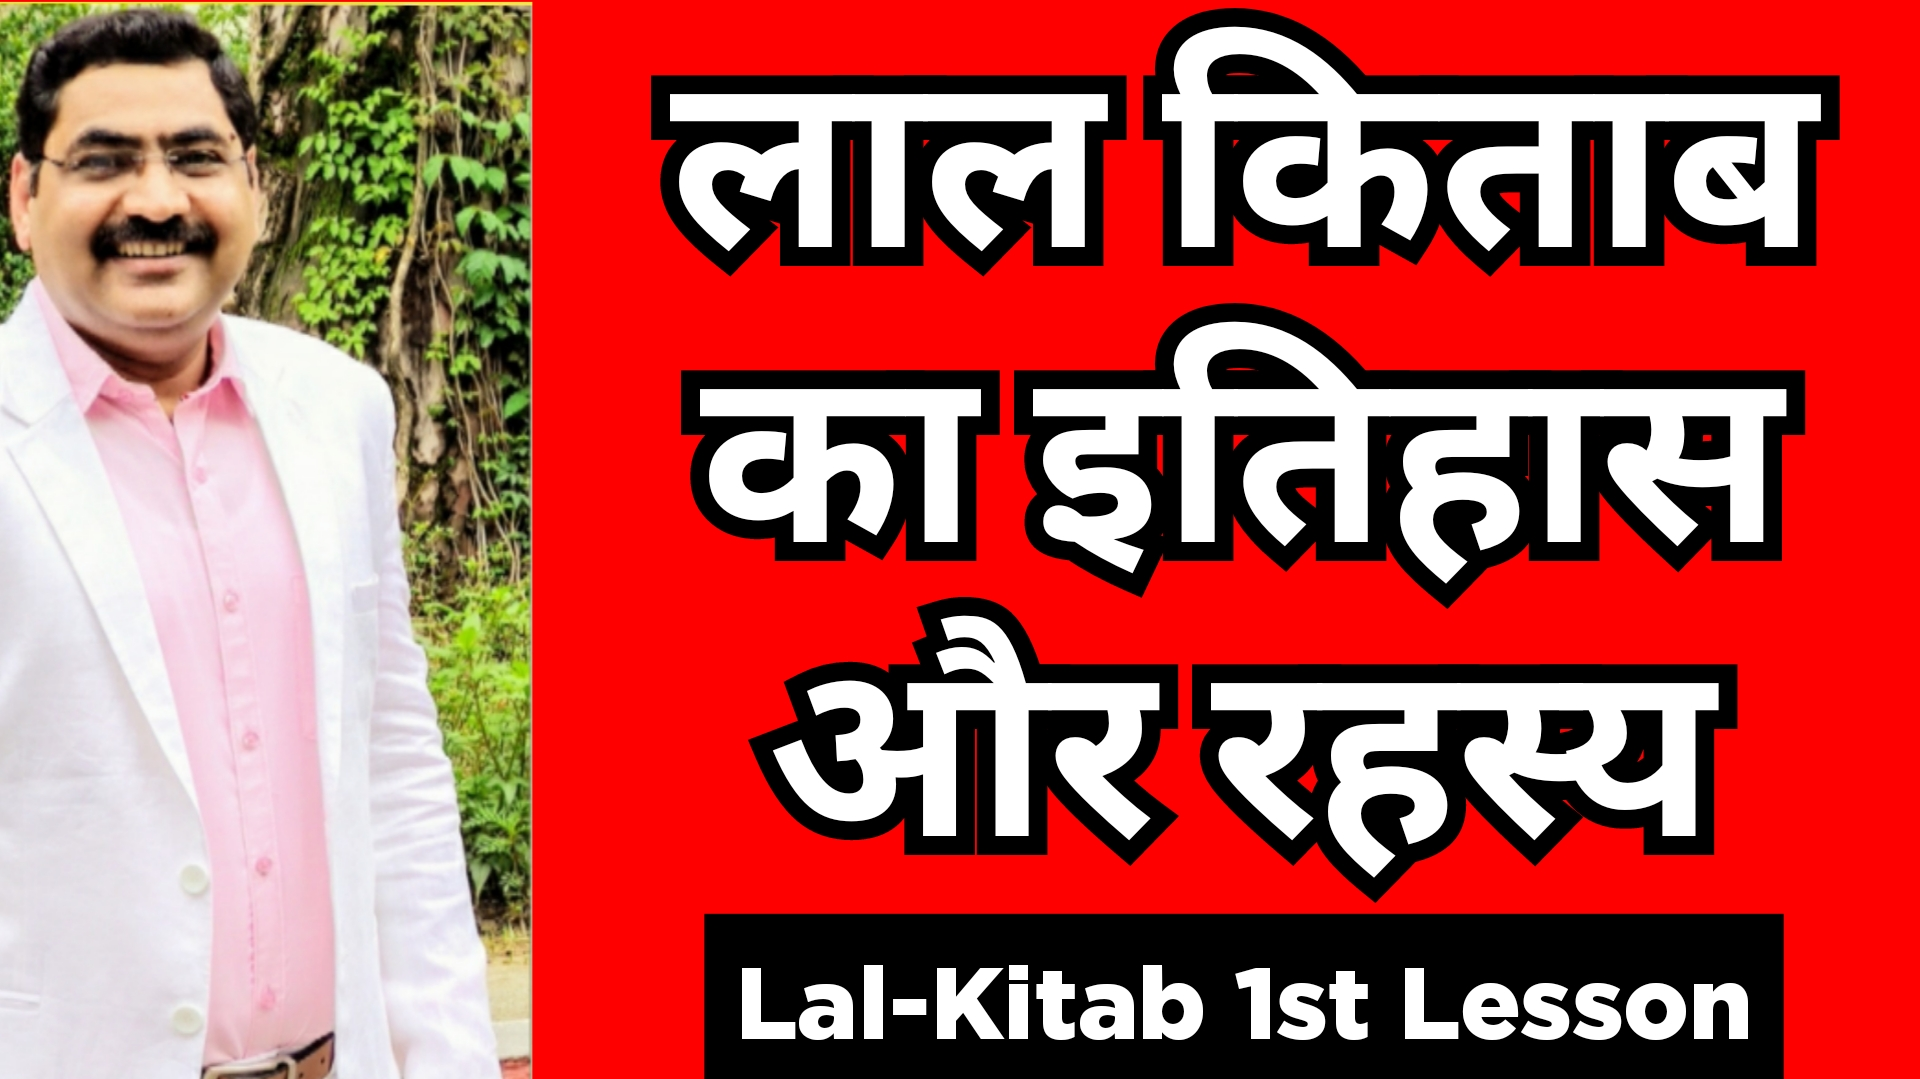 Lal Kitab Course & Remedies : Lal Kitab History & Mistery Video